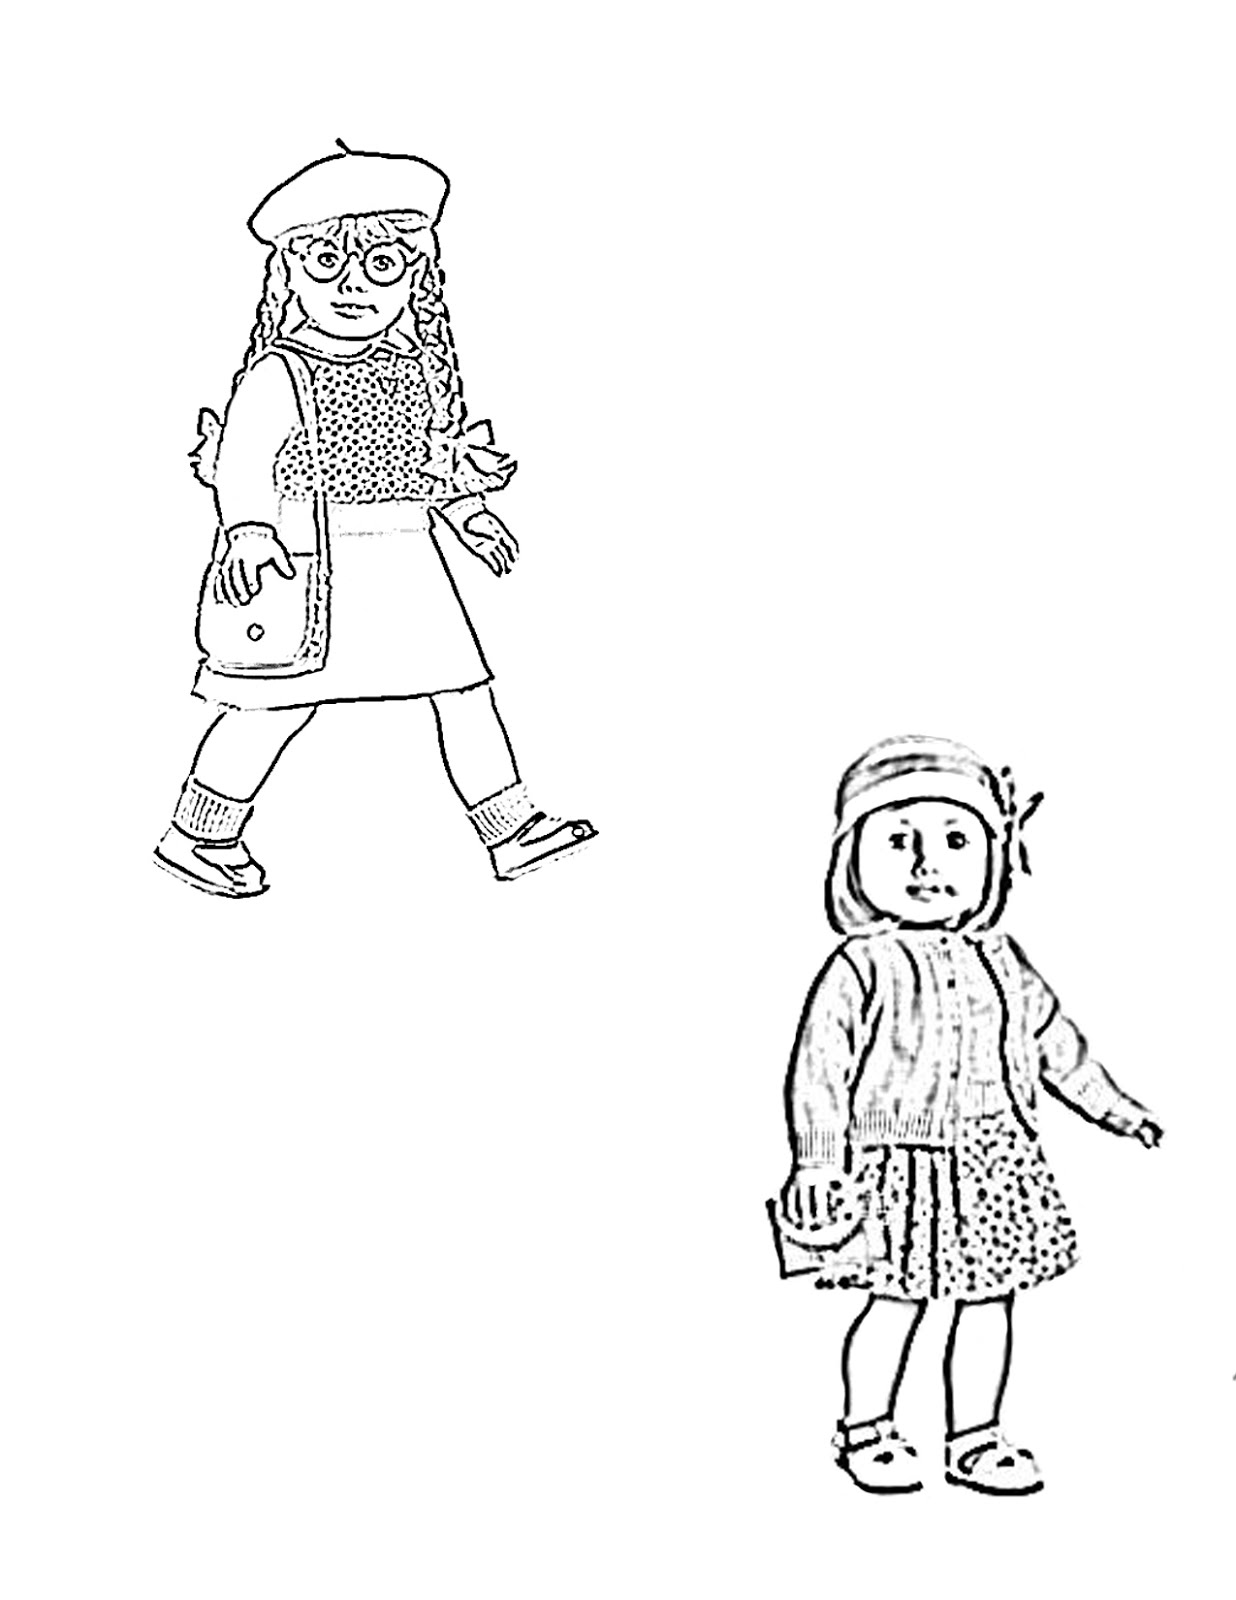 doll colouring pages paper doll coloring pages to download and print for free pages colouring doll